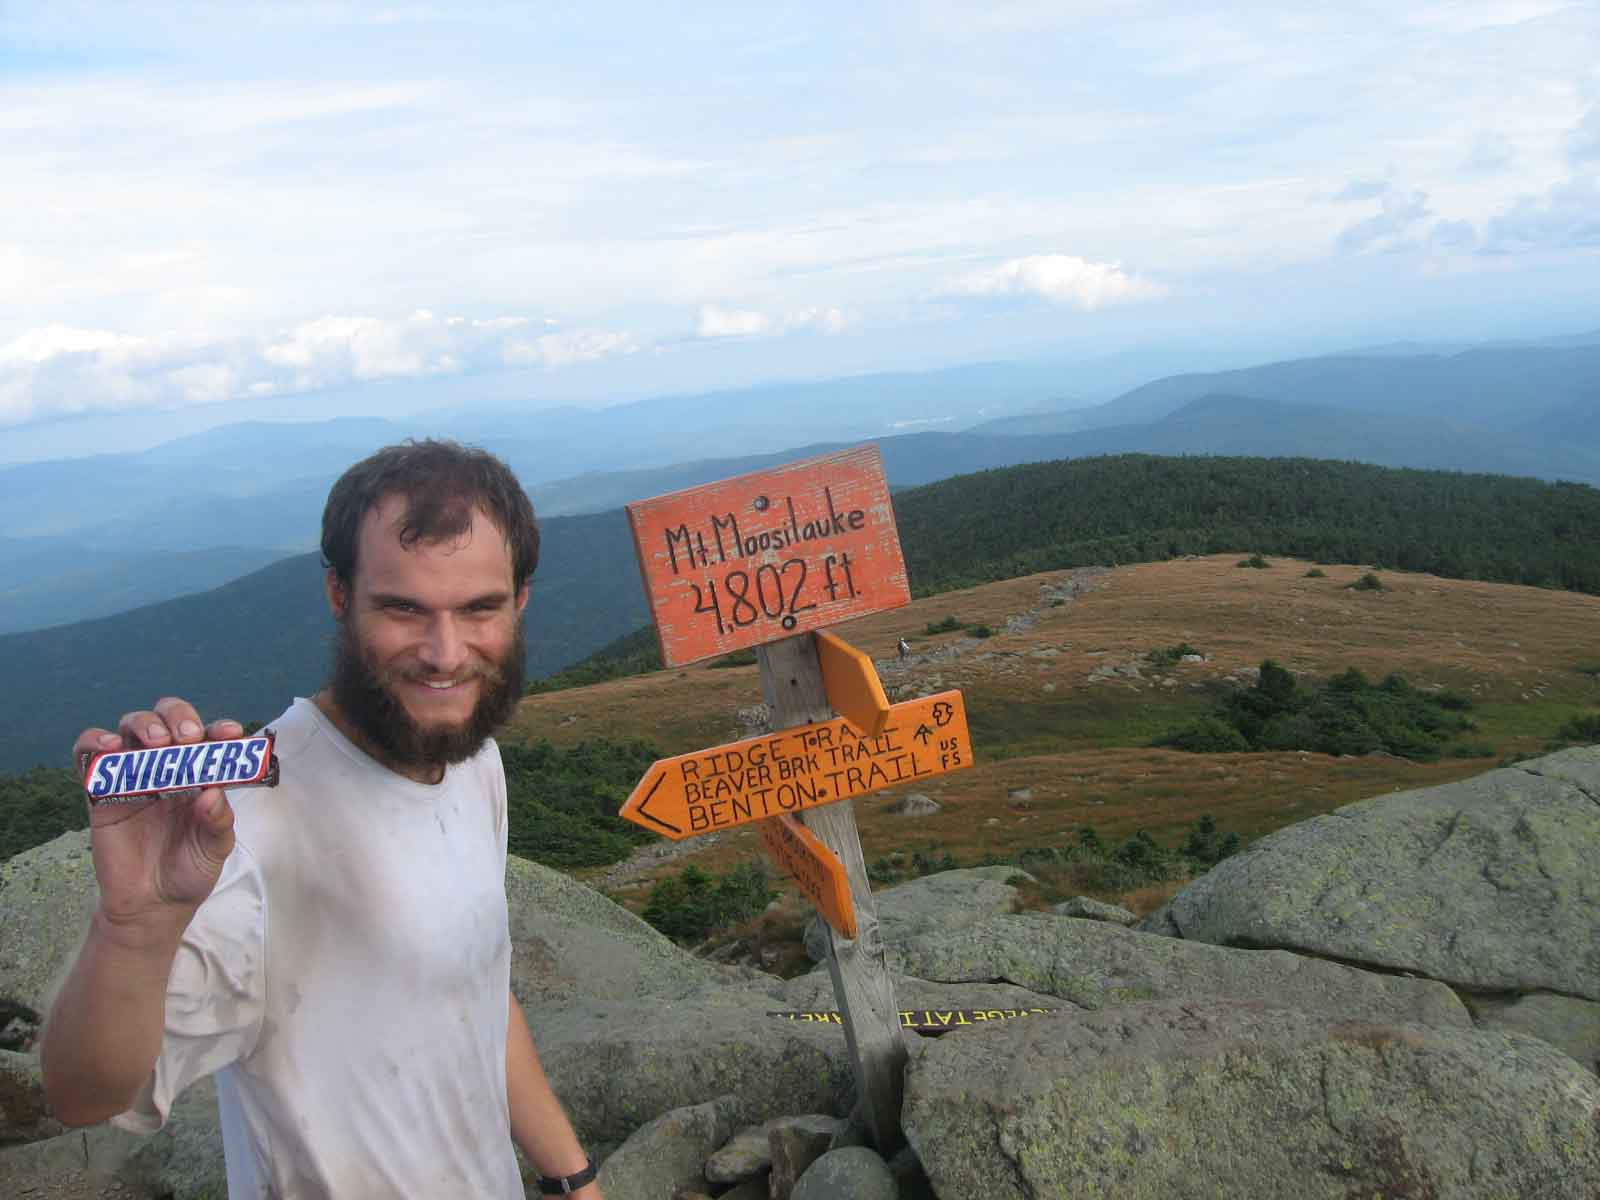 Optimus and his Snicker bar at the summit of Moosilauke.